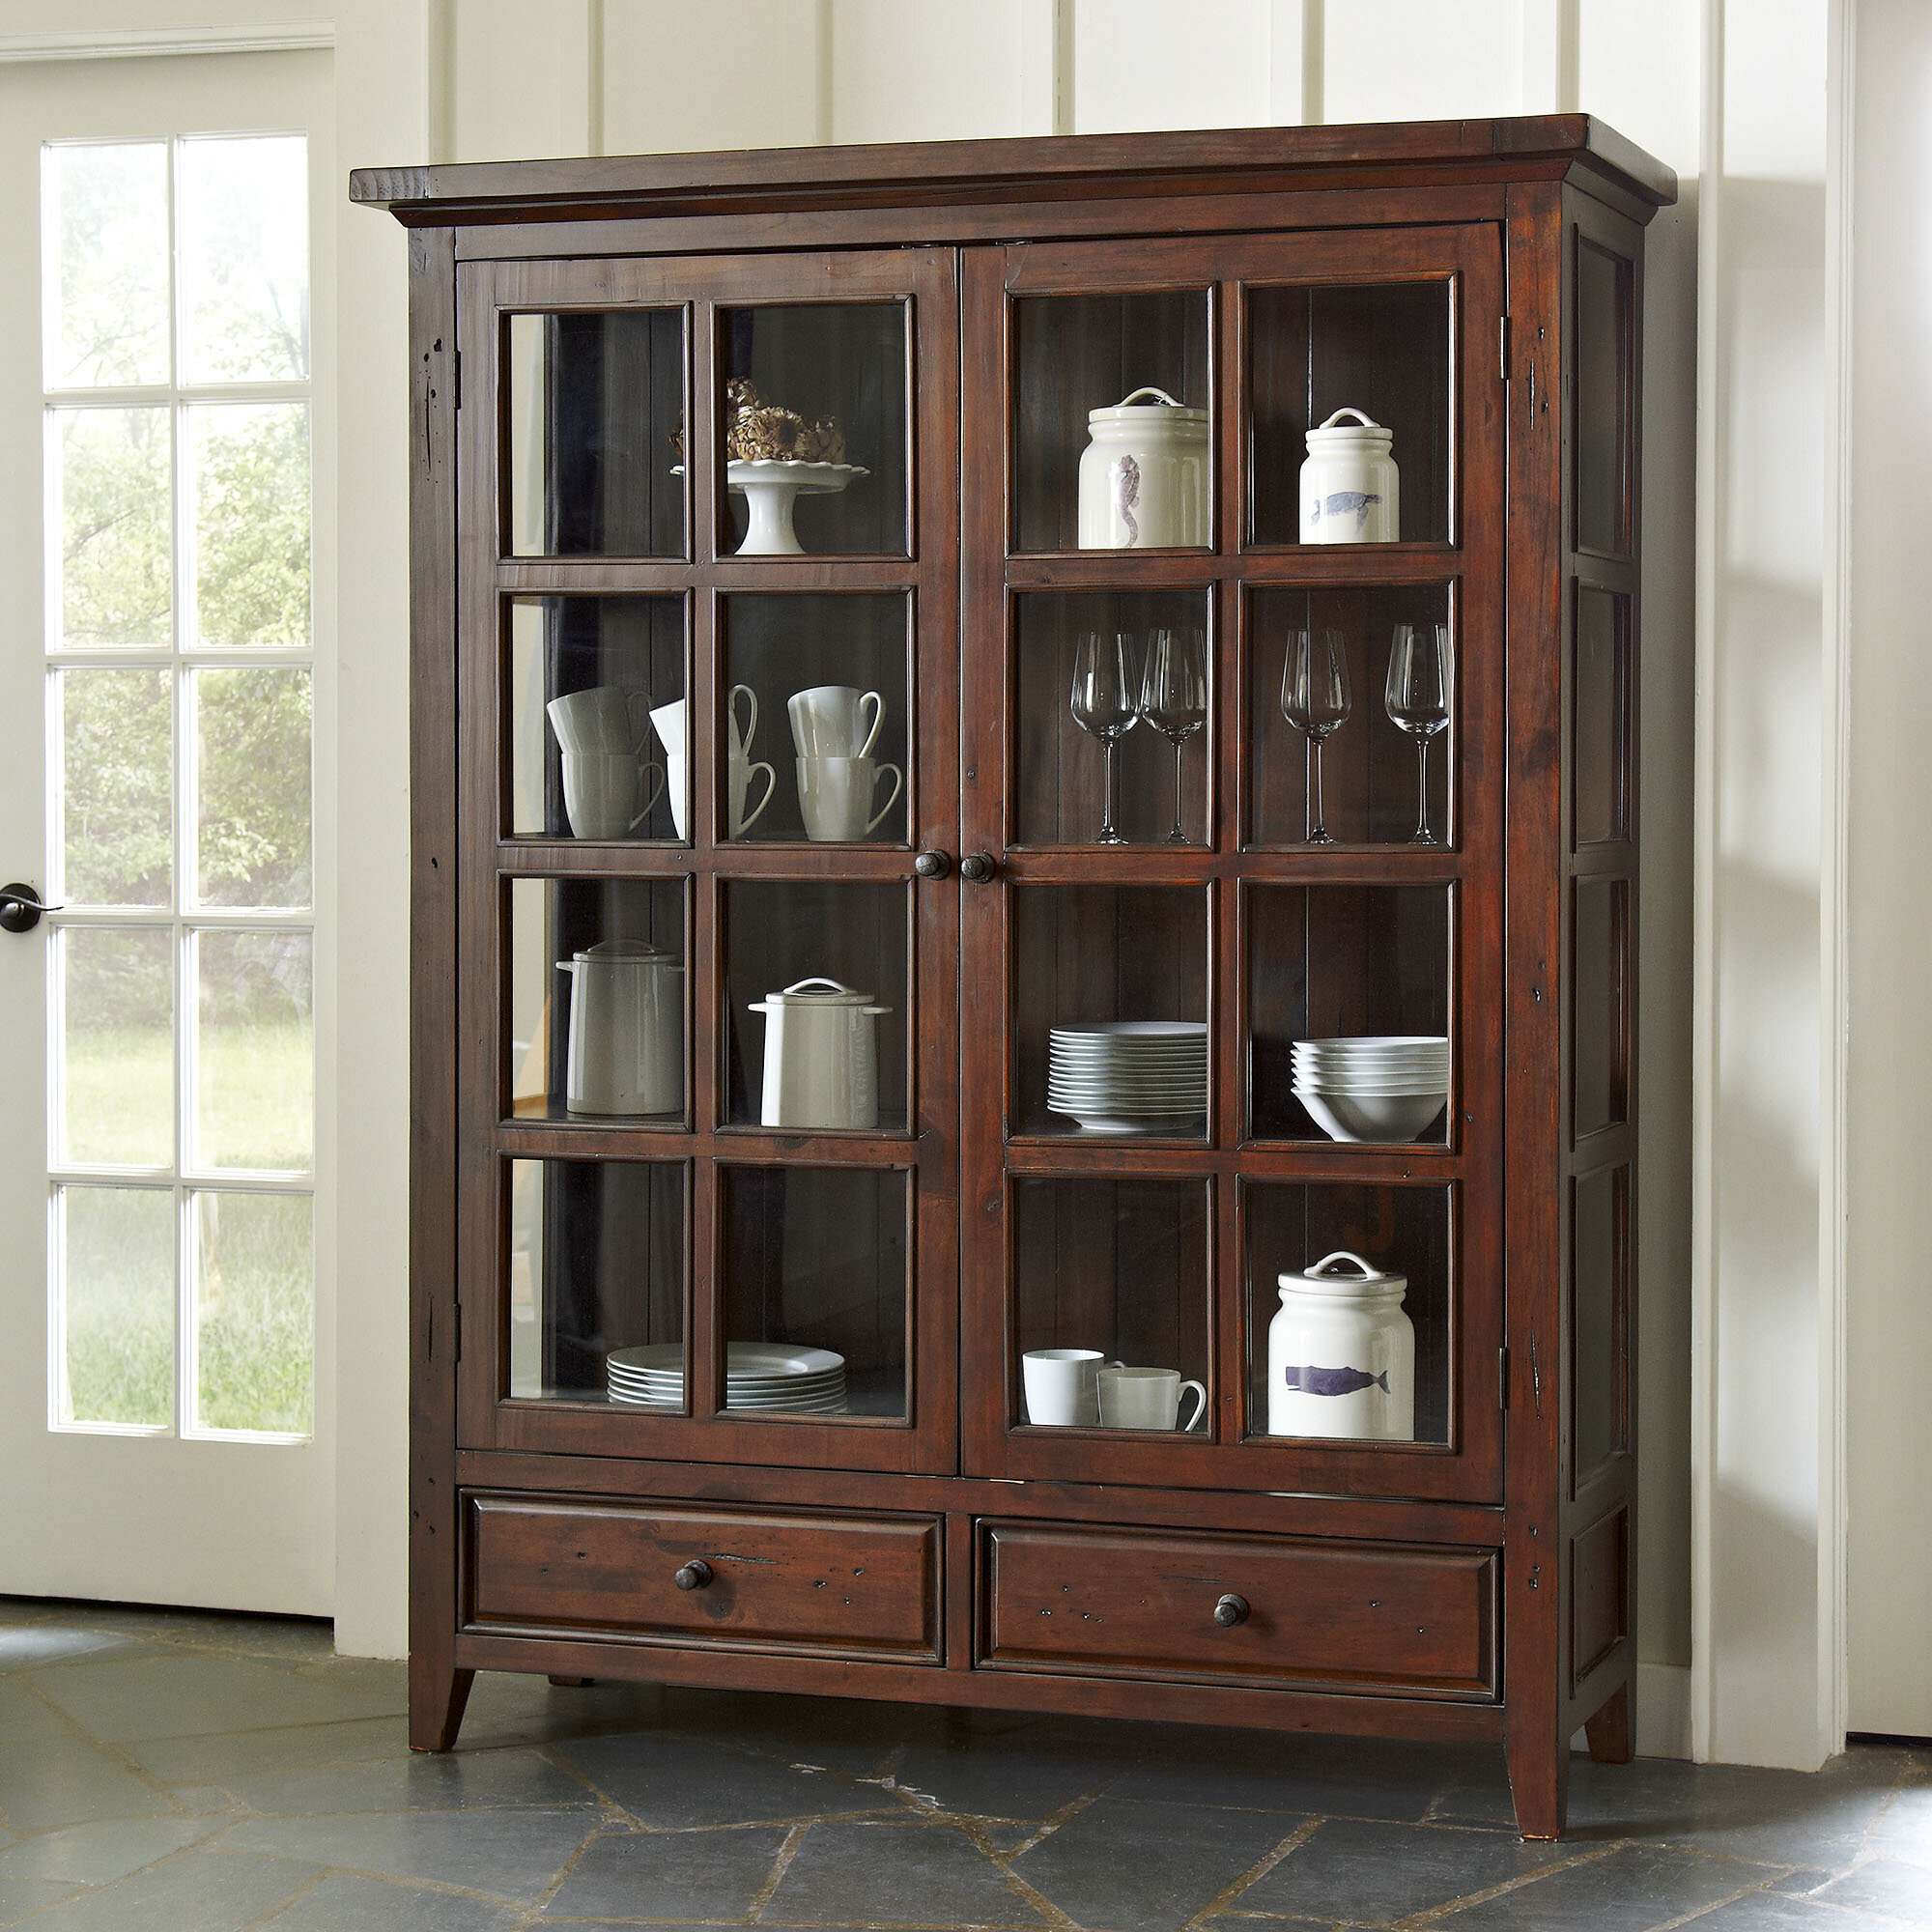 multiple lane ip com barrister finishes sauder bookcase walmart